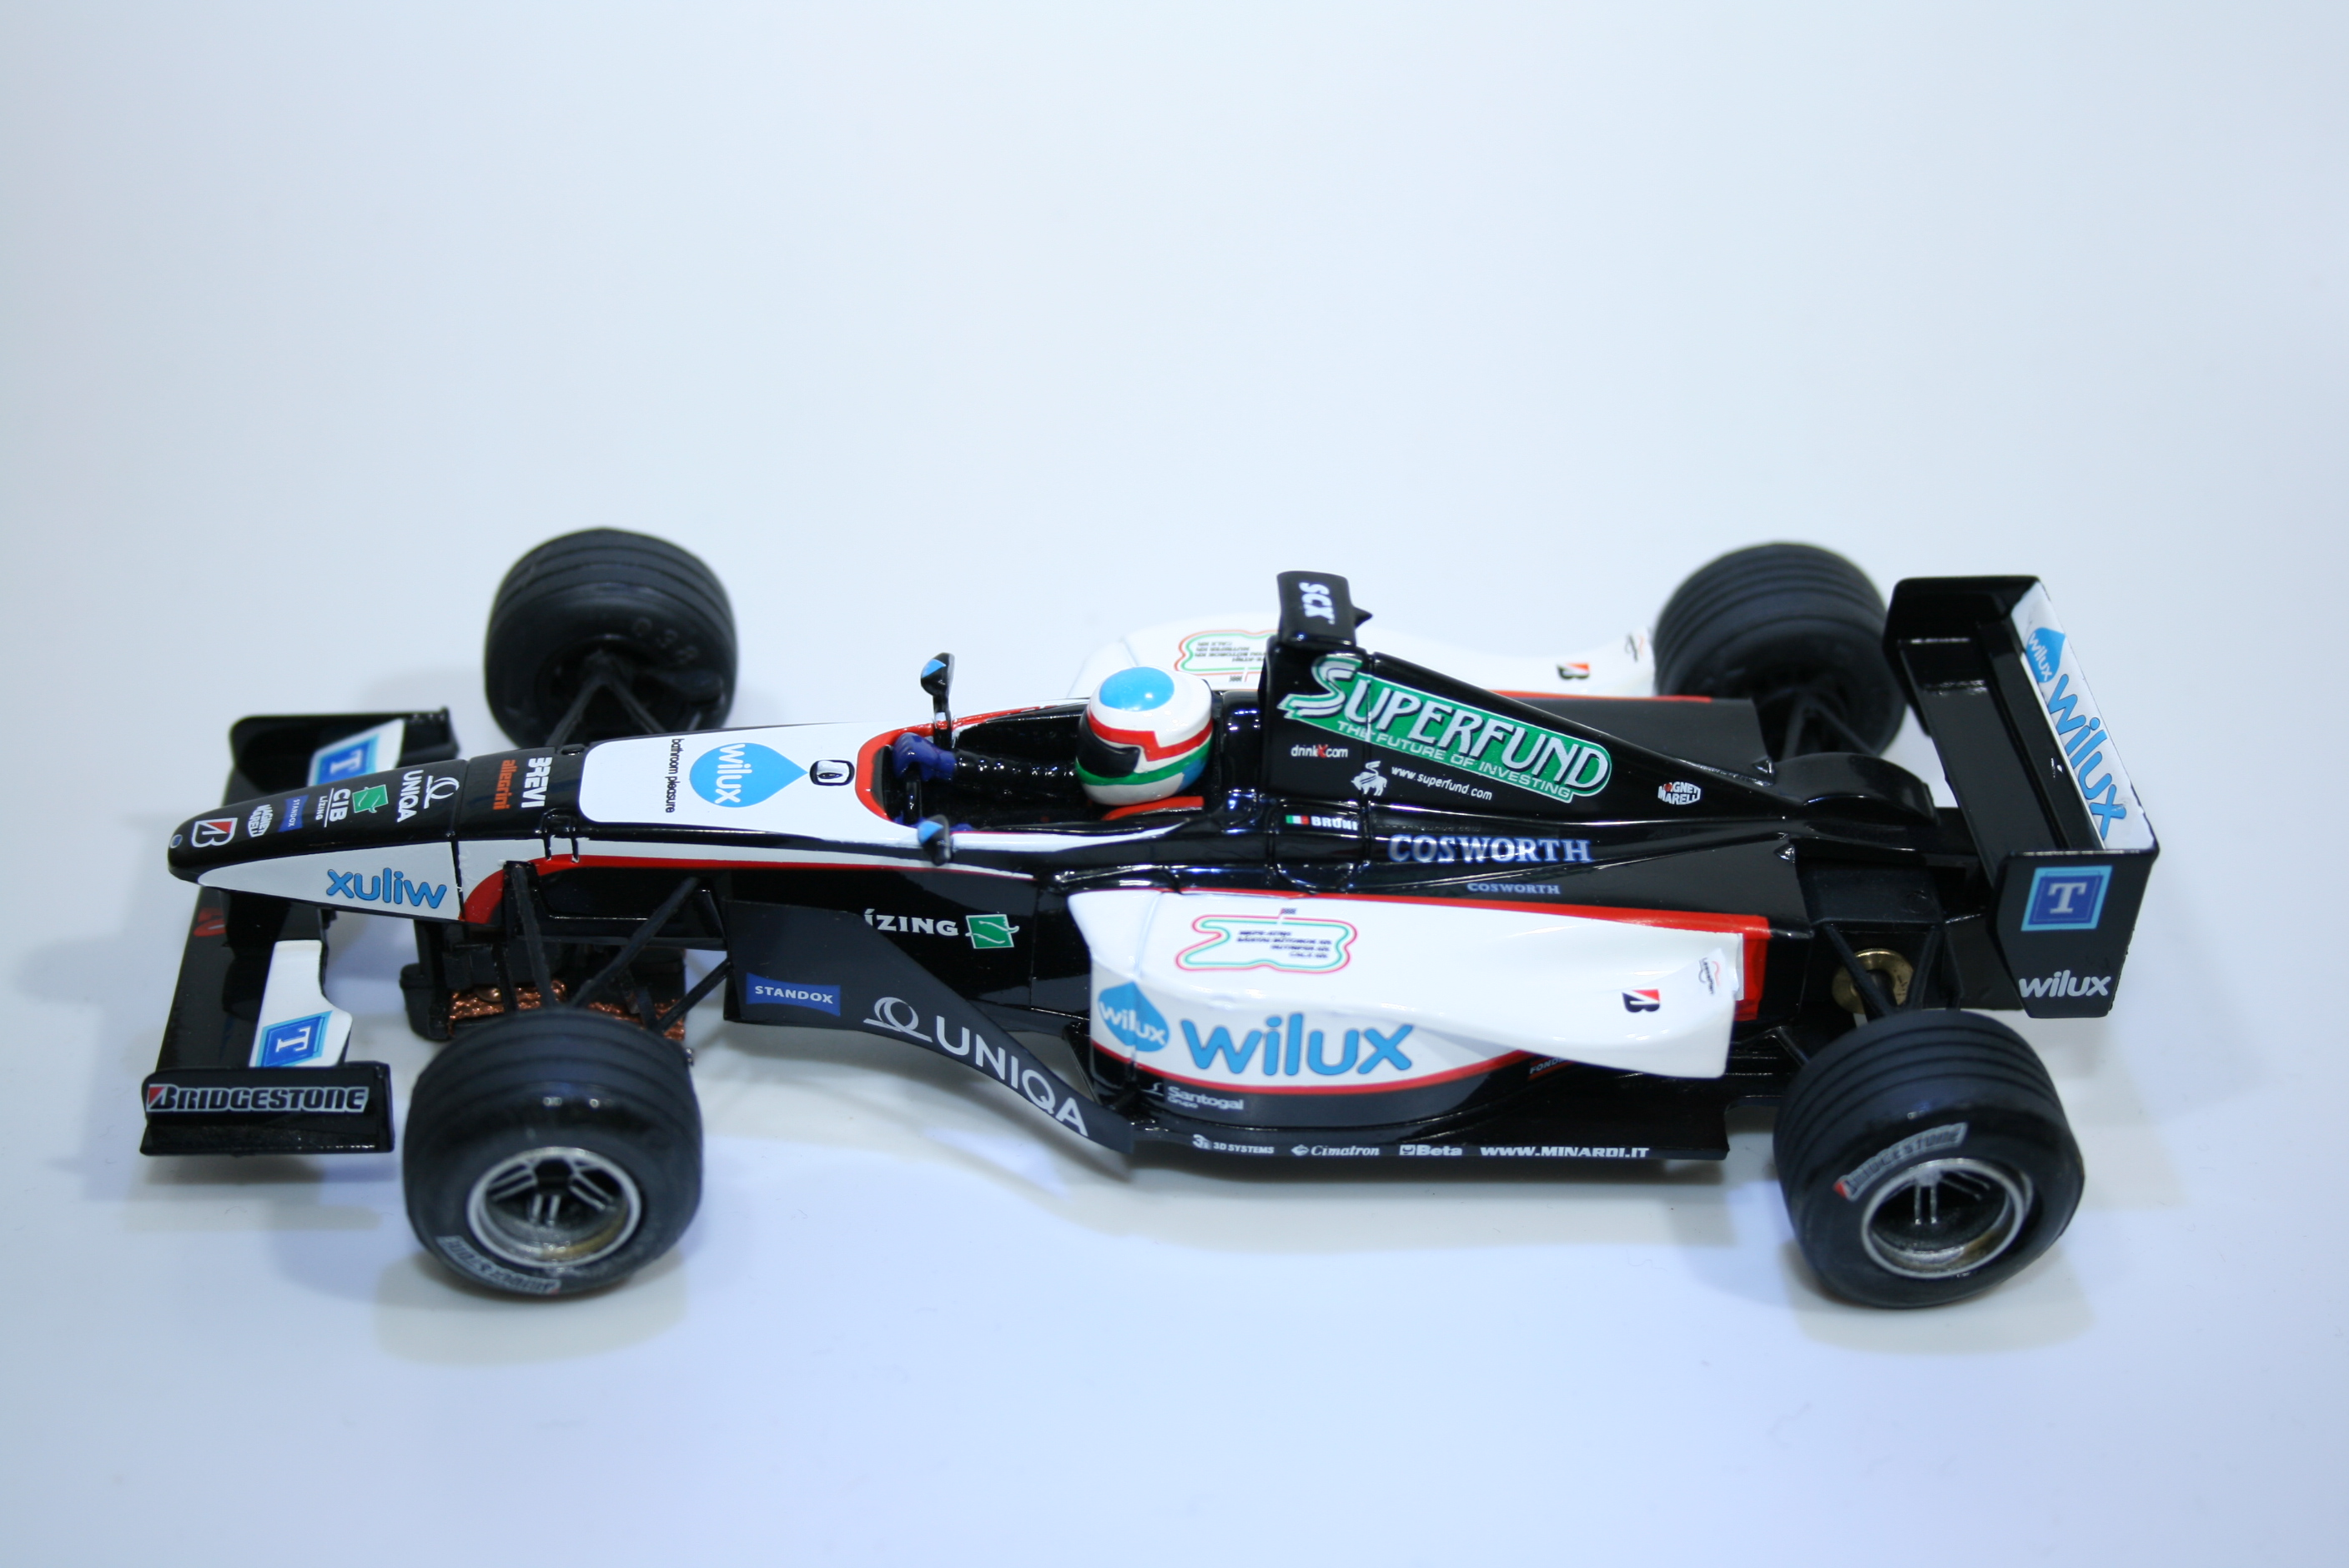 98 Minardi PS04 2004 G Bruni SCX 6152 2004 Boxed